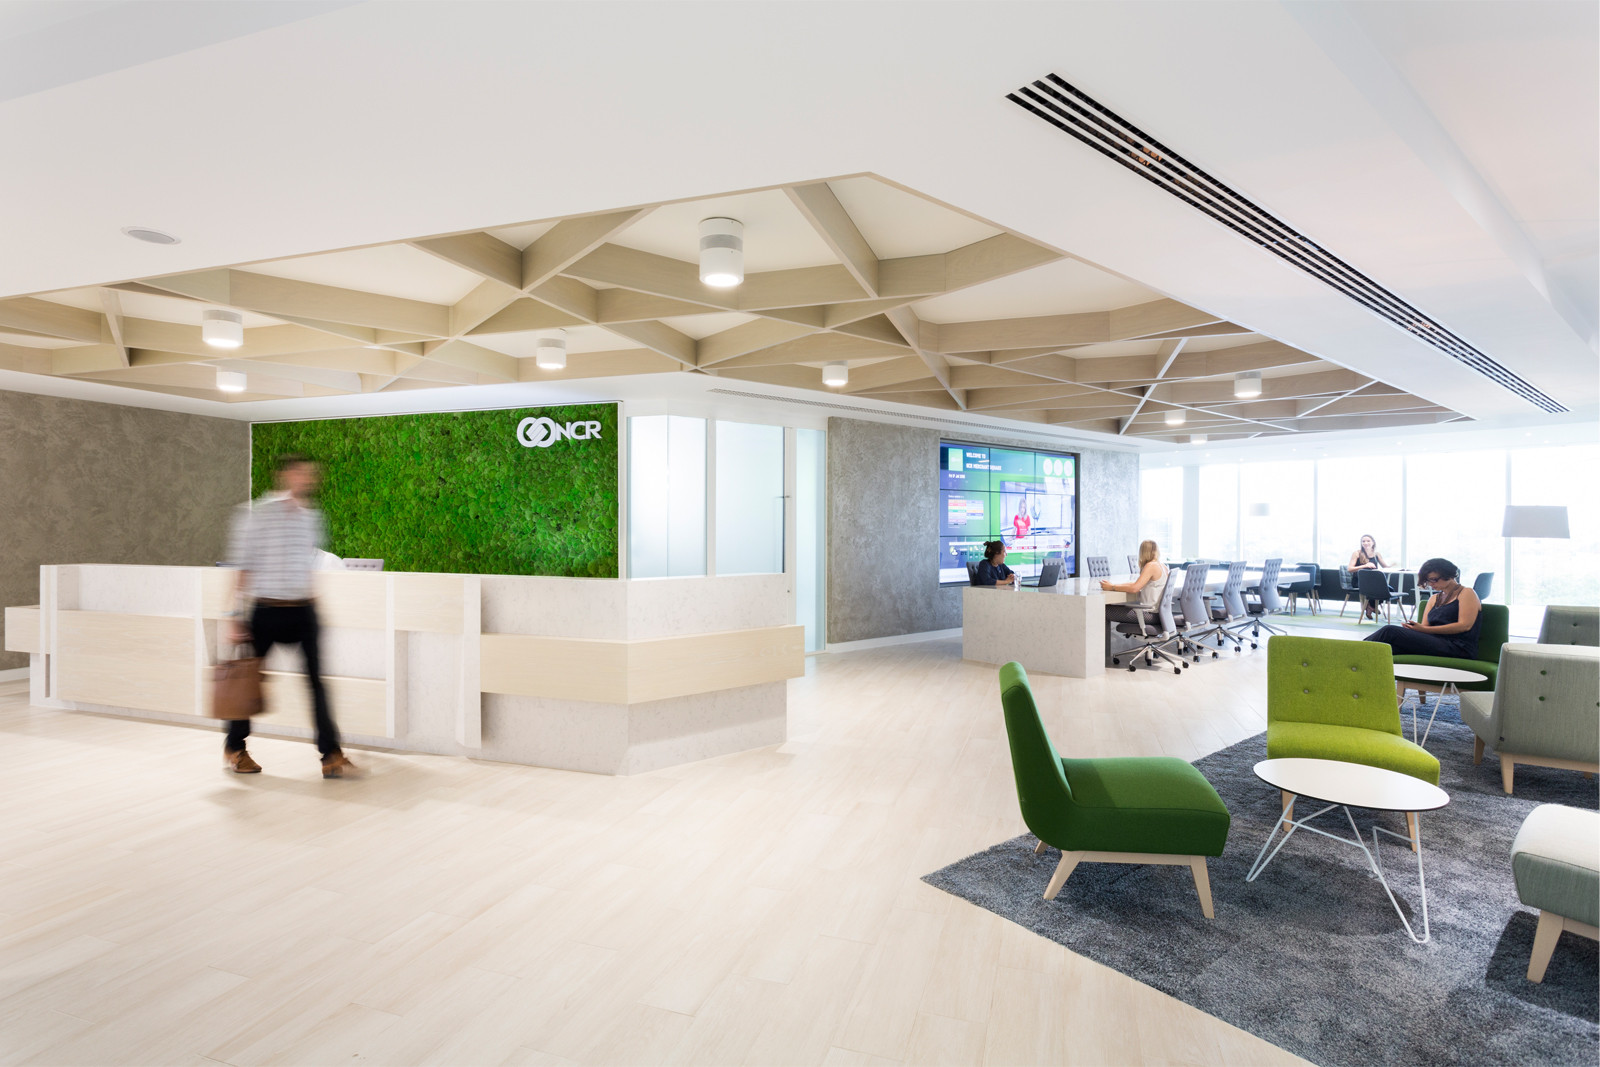 NCR, London uses biophilic design principles. Anna Breheny worked on this project while at Scott Brownrigg in the UK. Photo by Phillip Durrant.